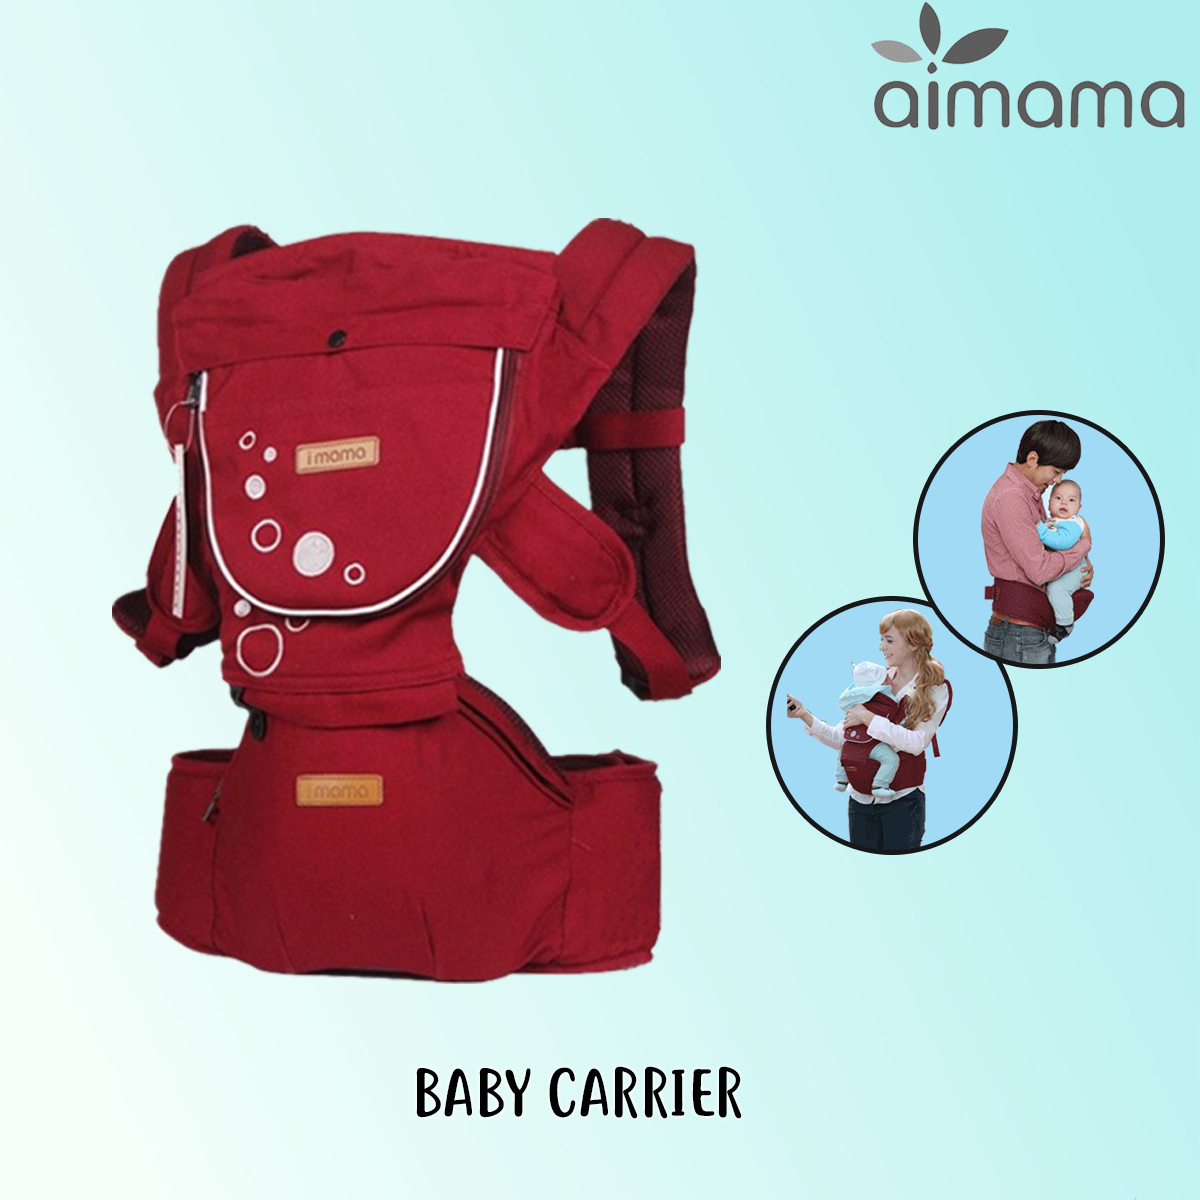 aimama baby carrier red.jpg